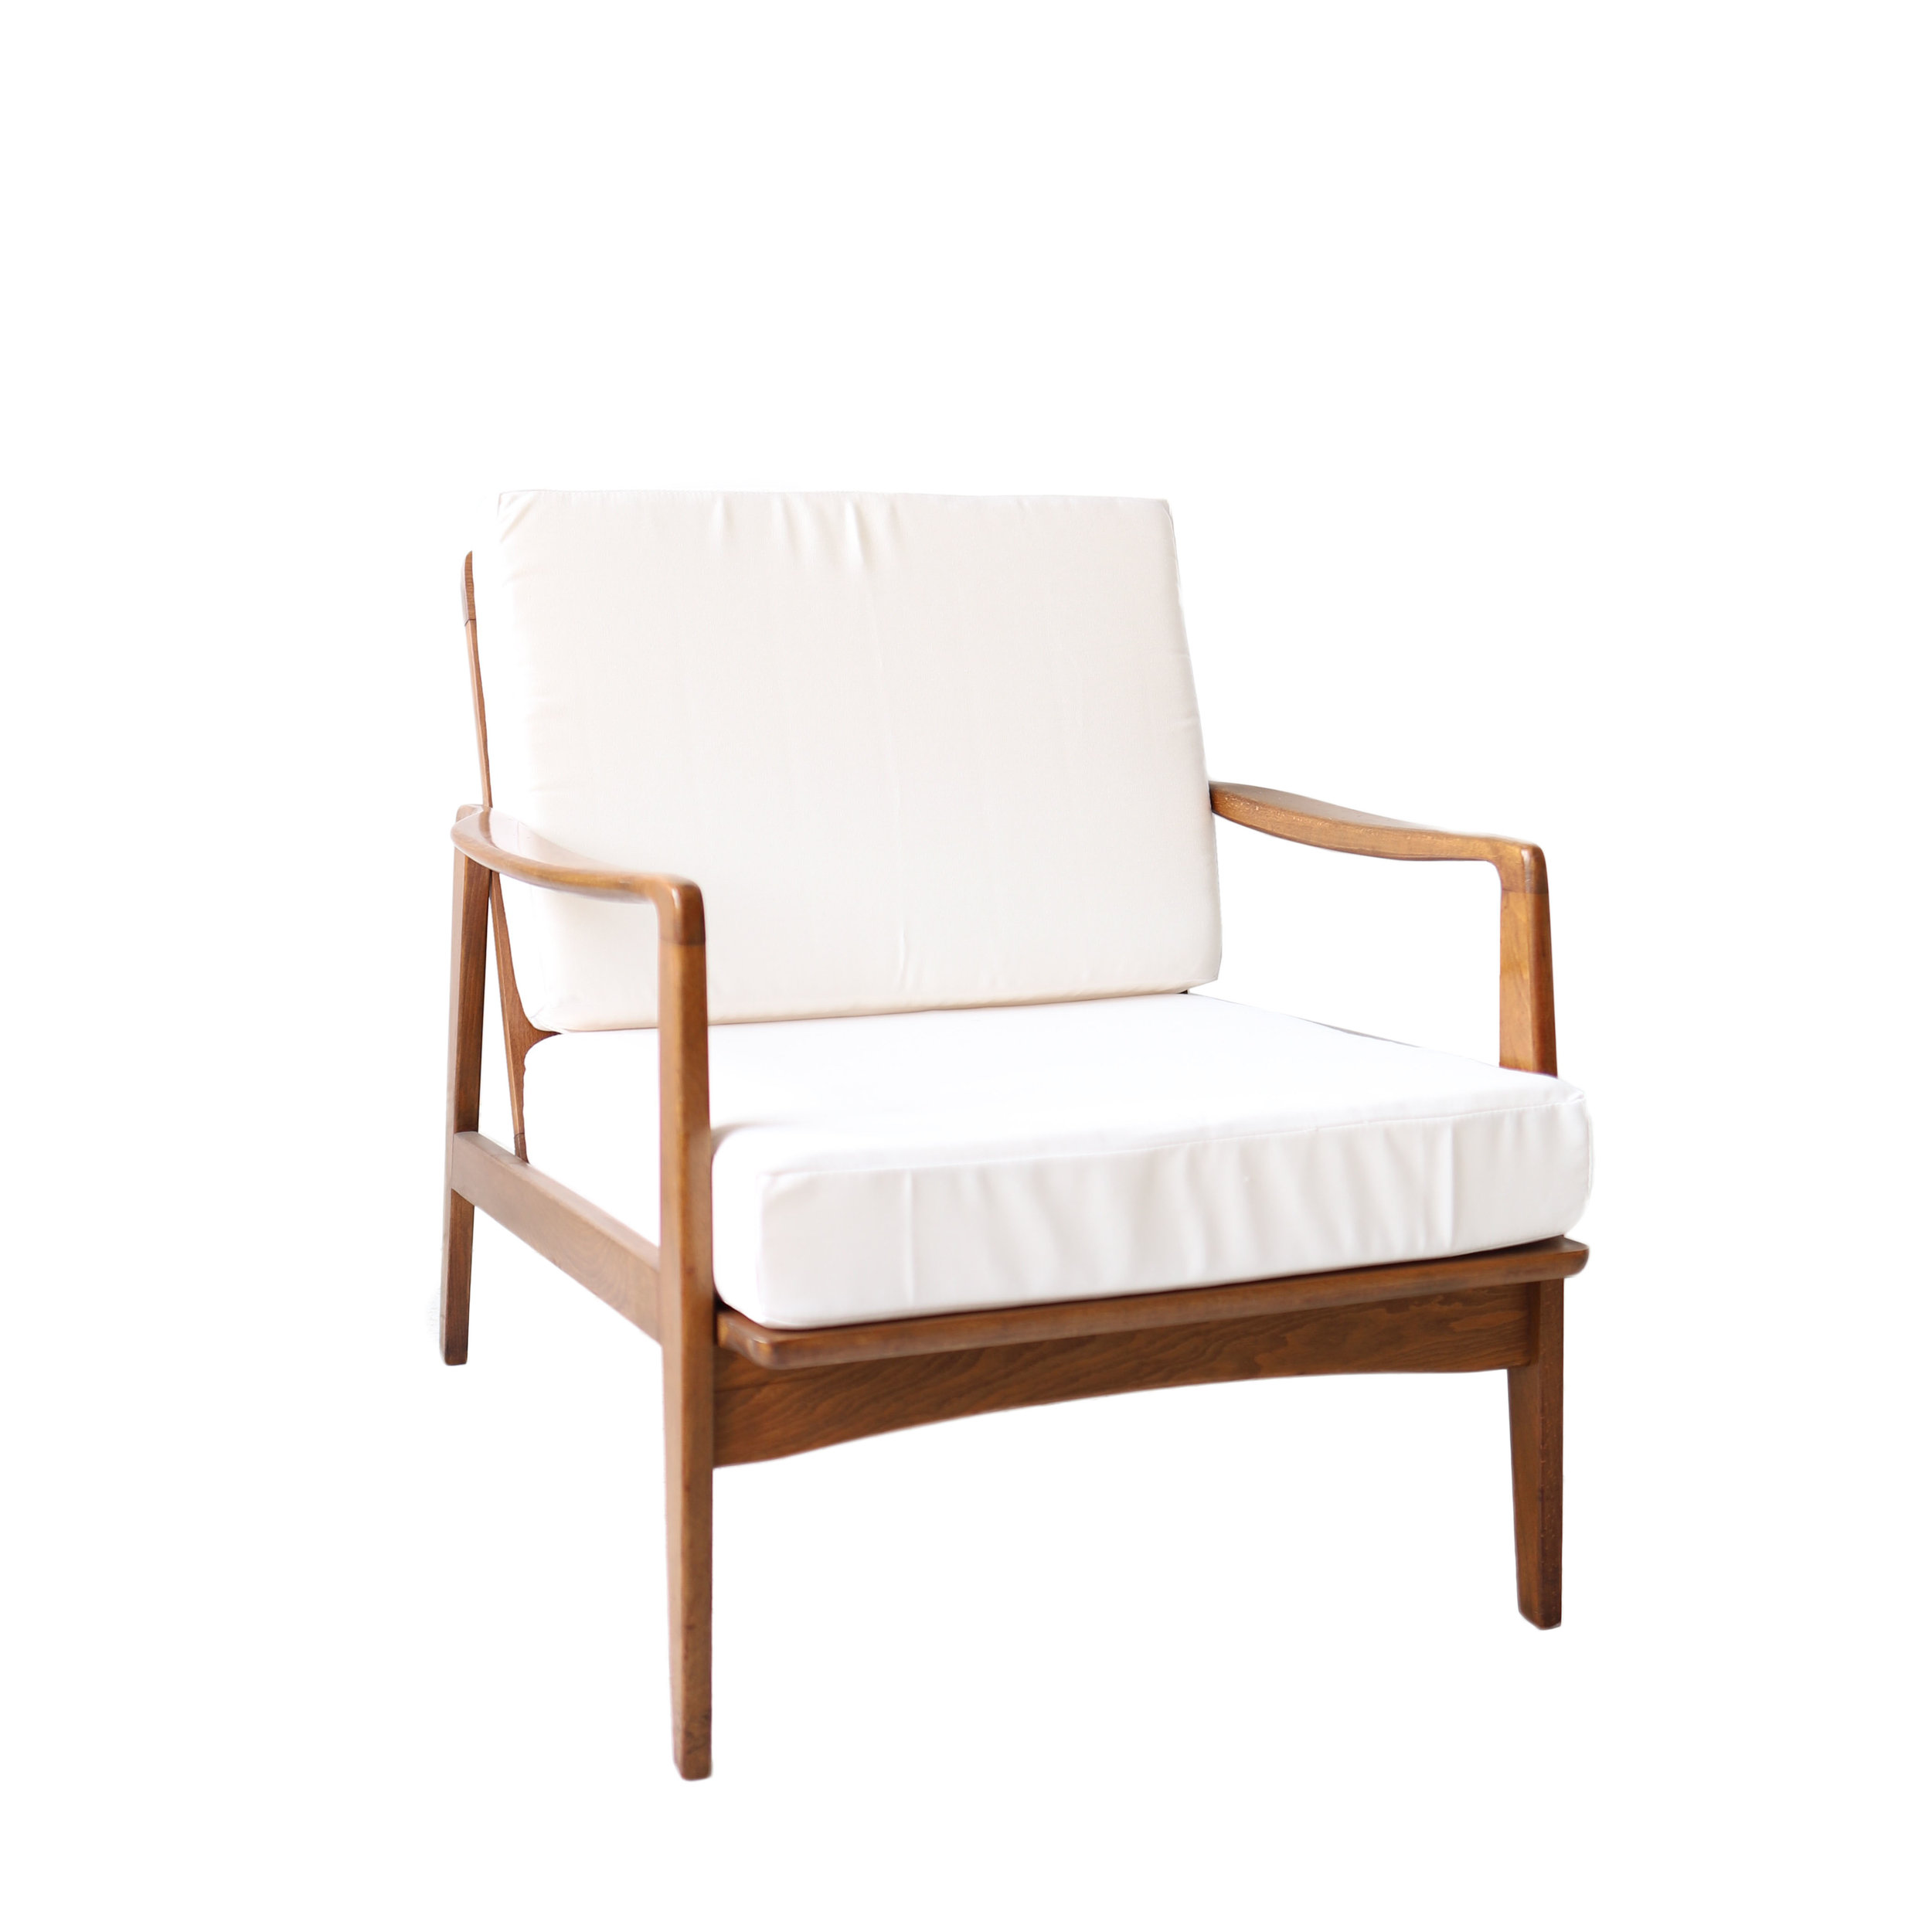 white lounge chair cushions tufted club at 1st sight new products vintage mid century modern jpg